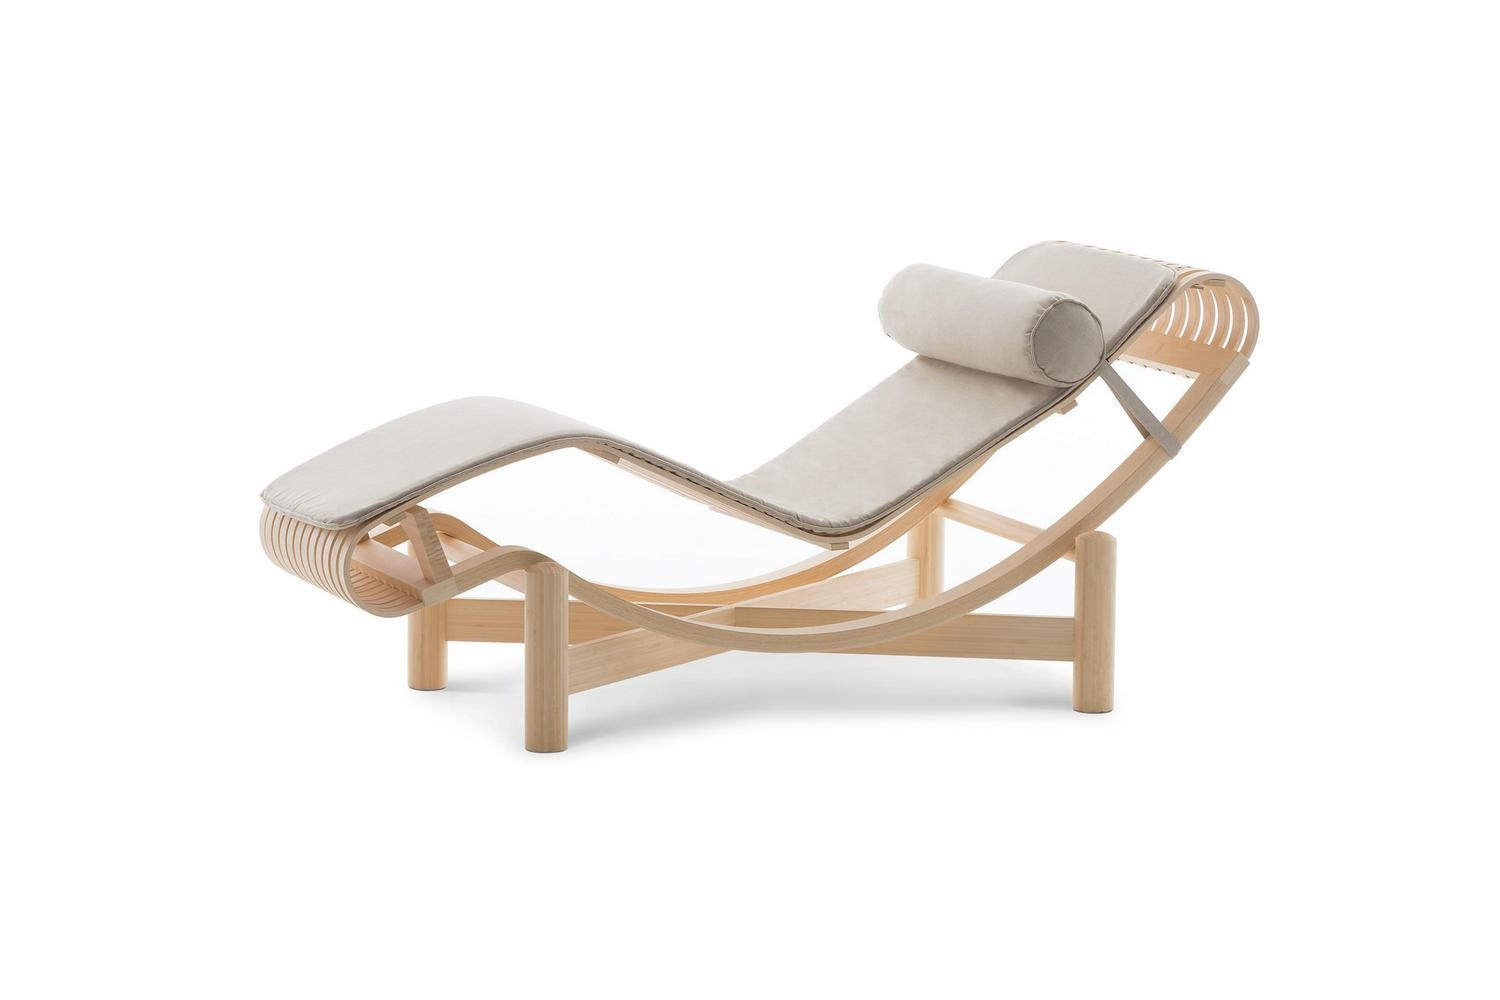 522 Tokyo Chaise Longue by Charlotte Perriand for Cassina